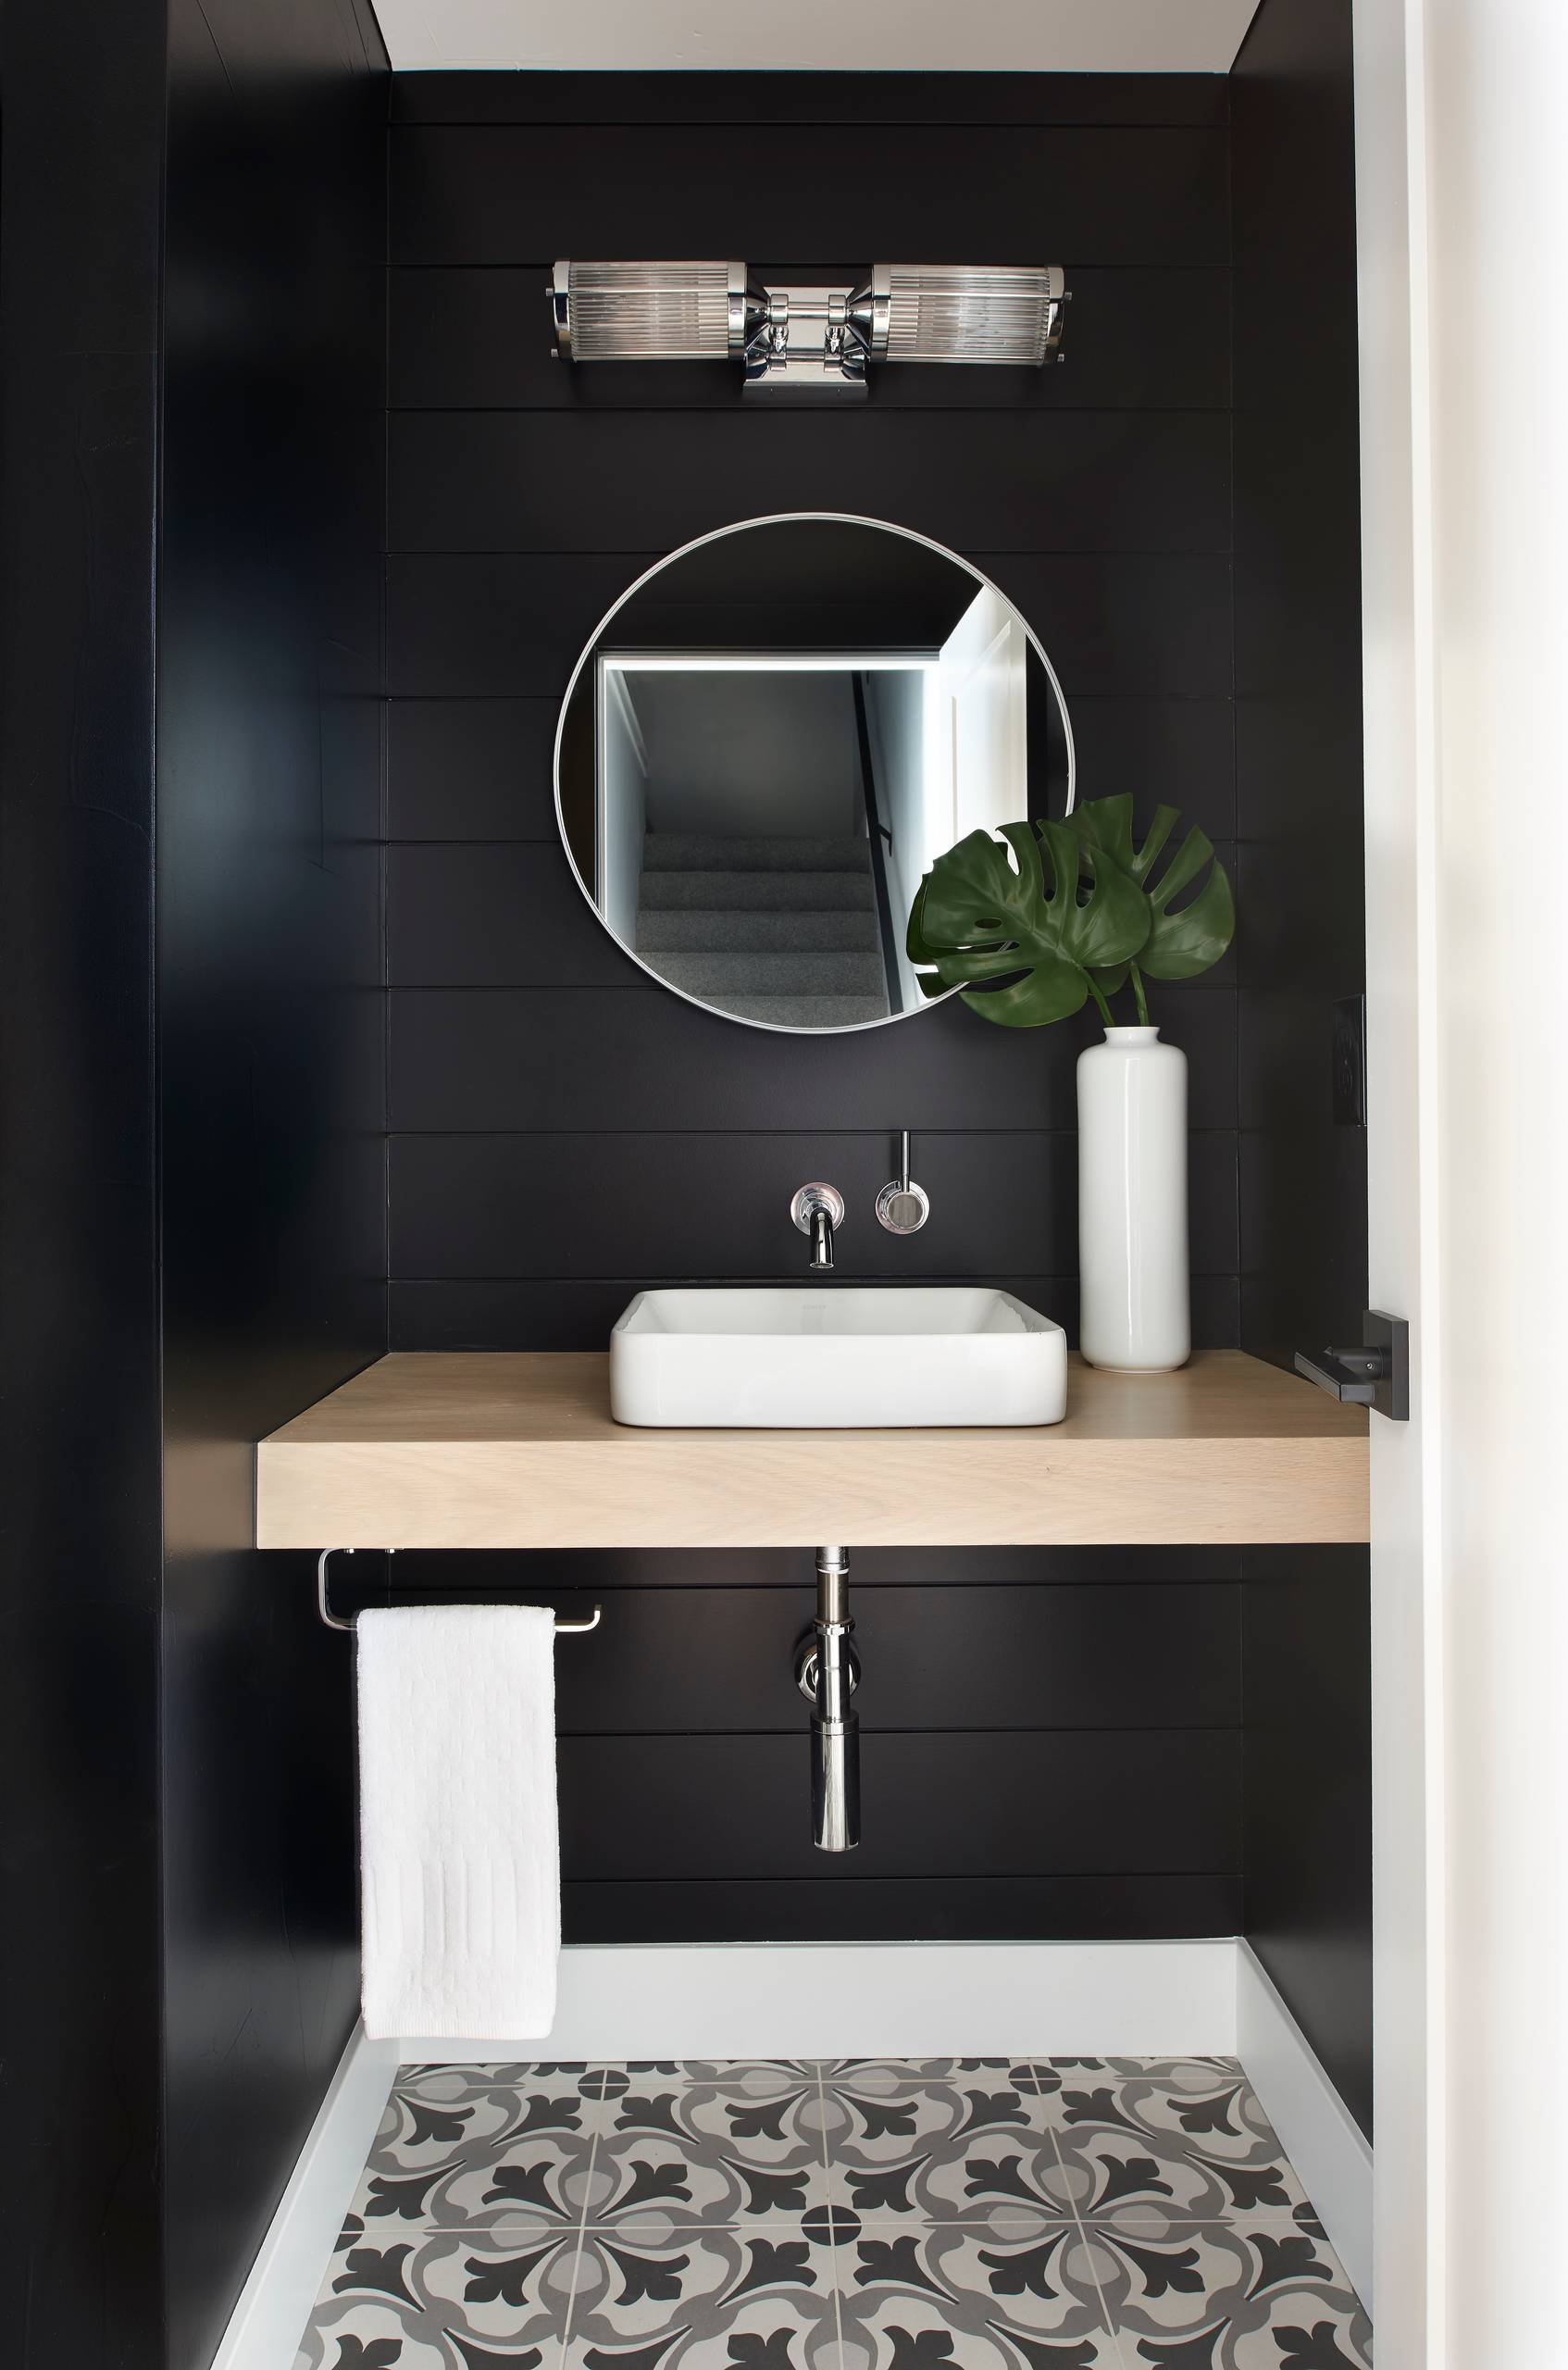 75 Beautiful Powder Room With Black Walls Pictures Ideas March 2021 Houzz